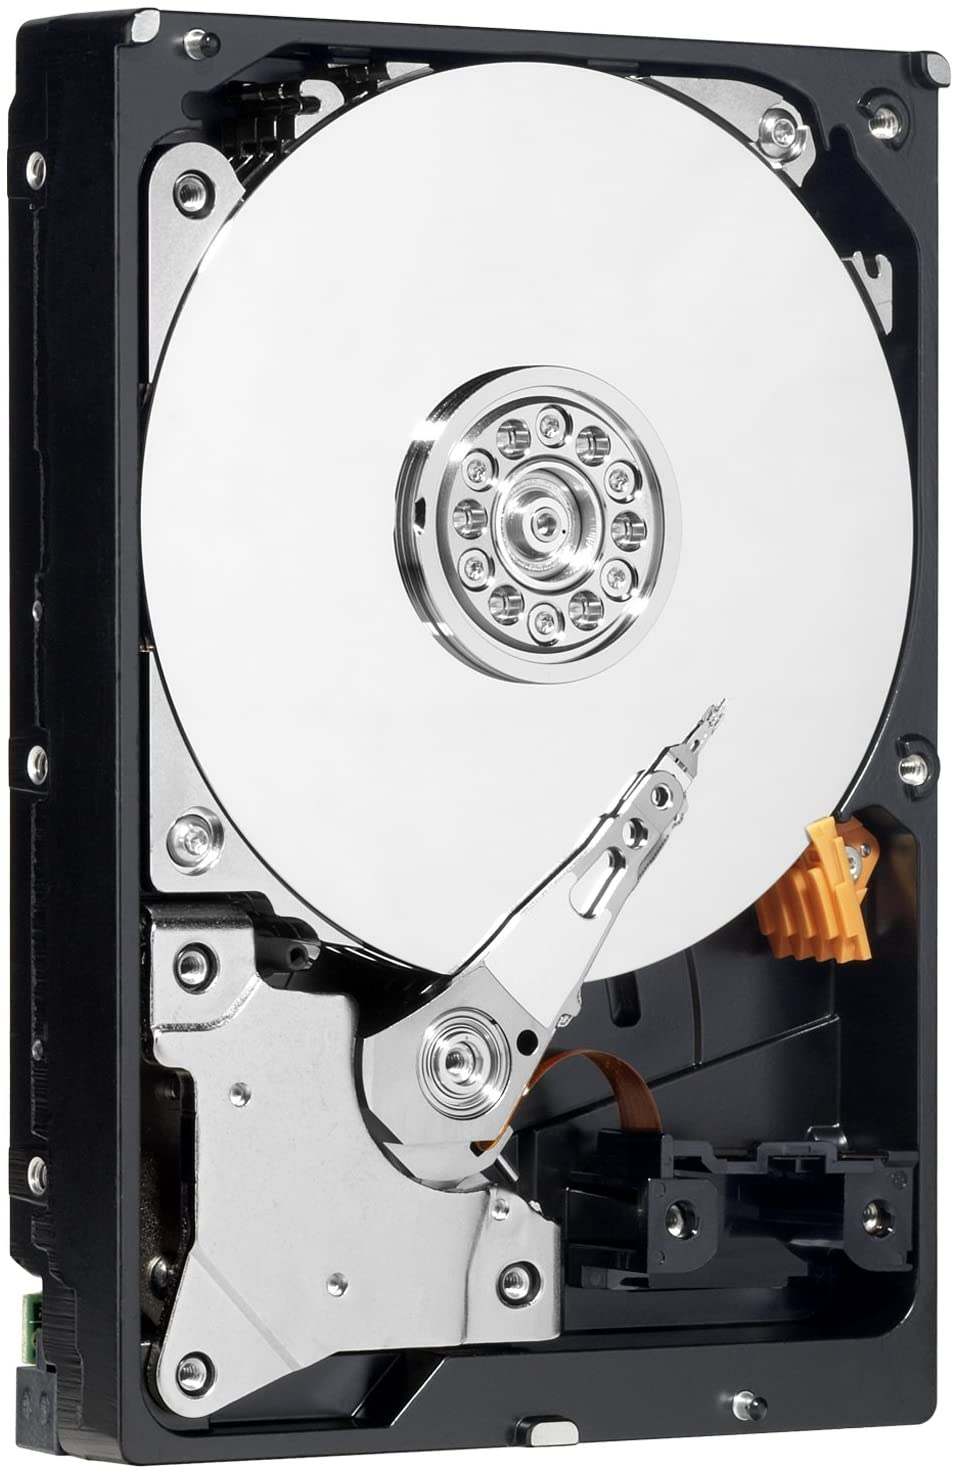 Western Digital 1.5 TB Caviar Green SATA Intellipower 64 MB Cache Bulk//OEM Desktop Hard Drive WD15EARS